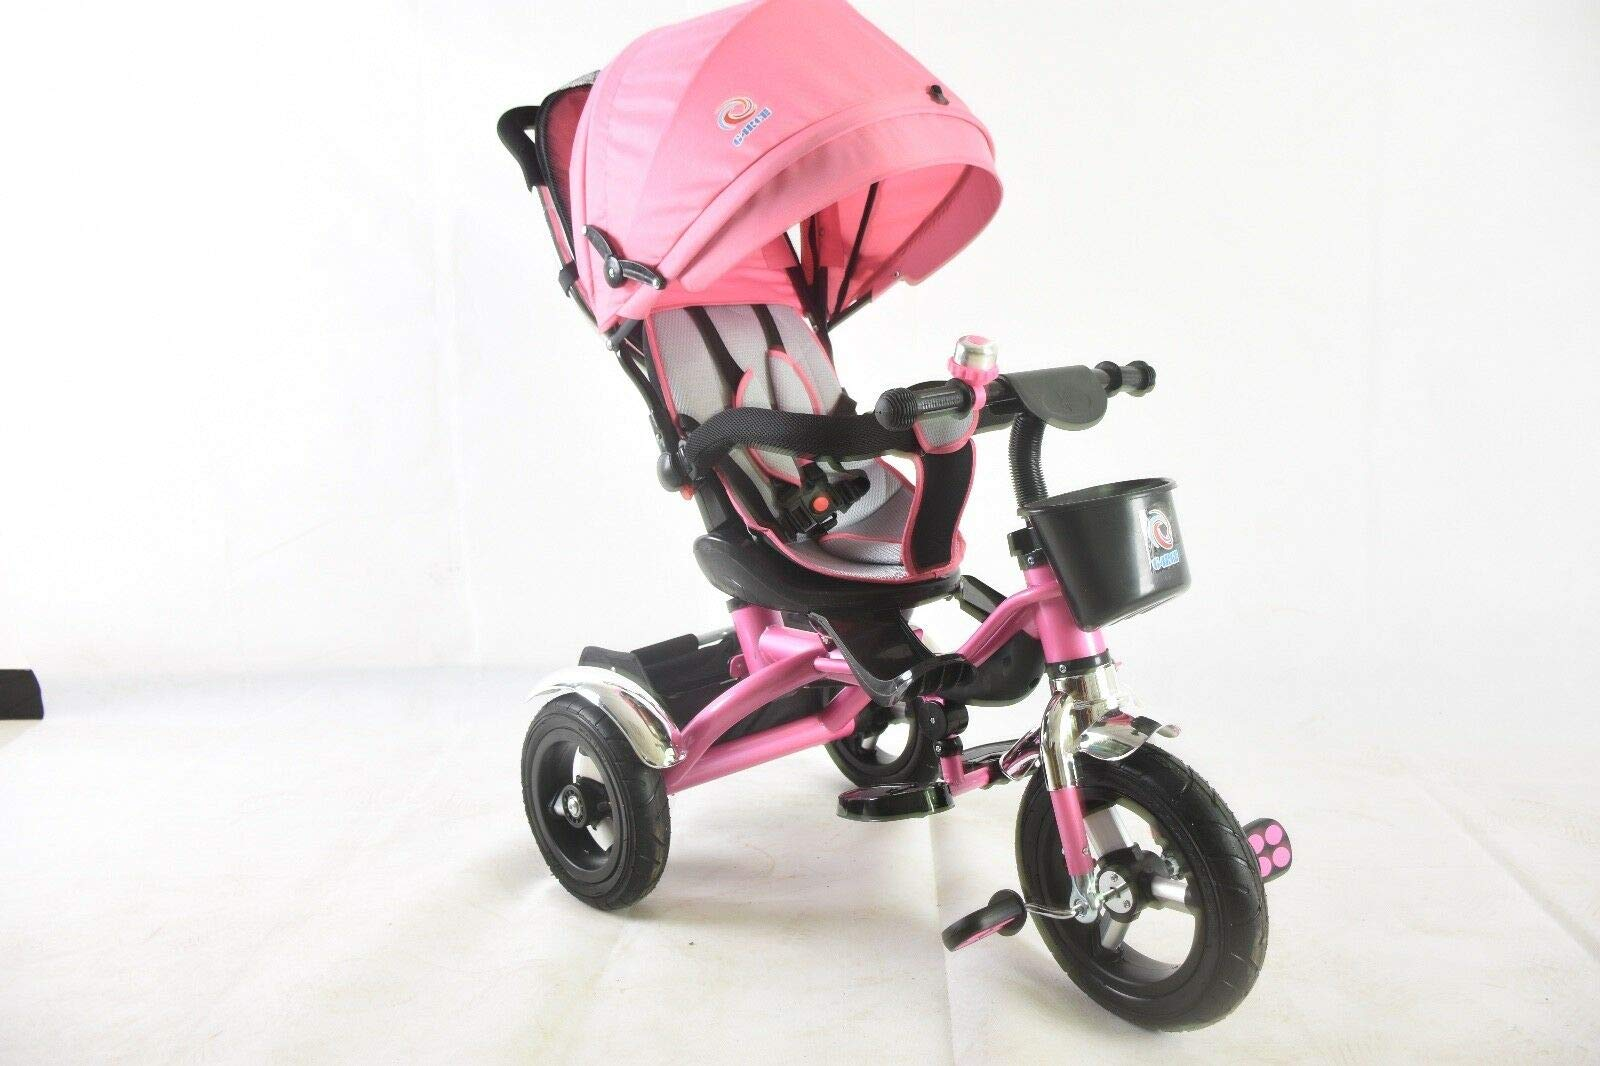 Trike Tricycle Stroller Buggy Wheel Ride Push Rain Cover Rubber Tyres 4 in 1 System (Pink) Generic Removable Leg rest for kids to feet up. Adjustable and removable parent handle or control bar. Plastic seat with removable padded cushion and lap seat belt to keep your child safe. 5